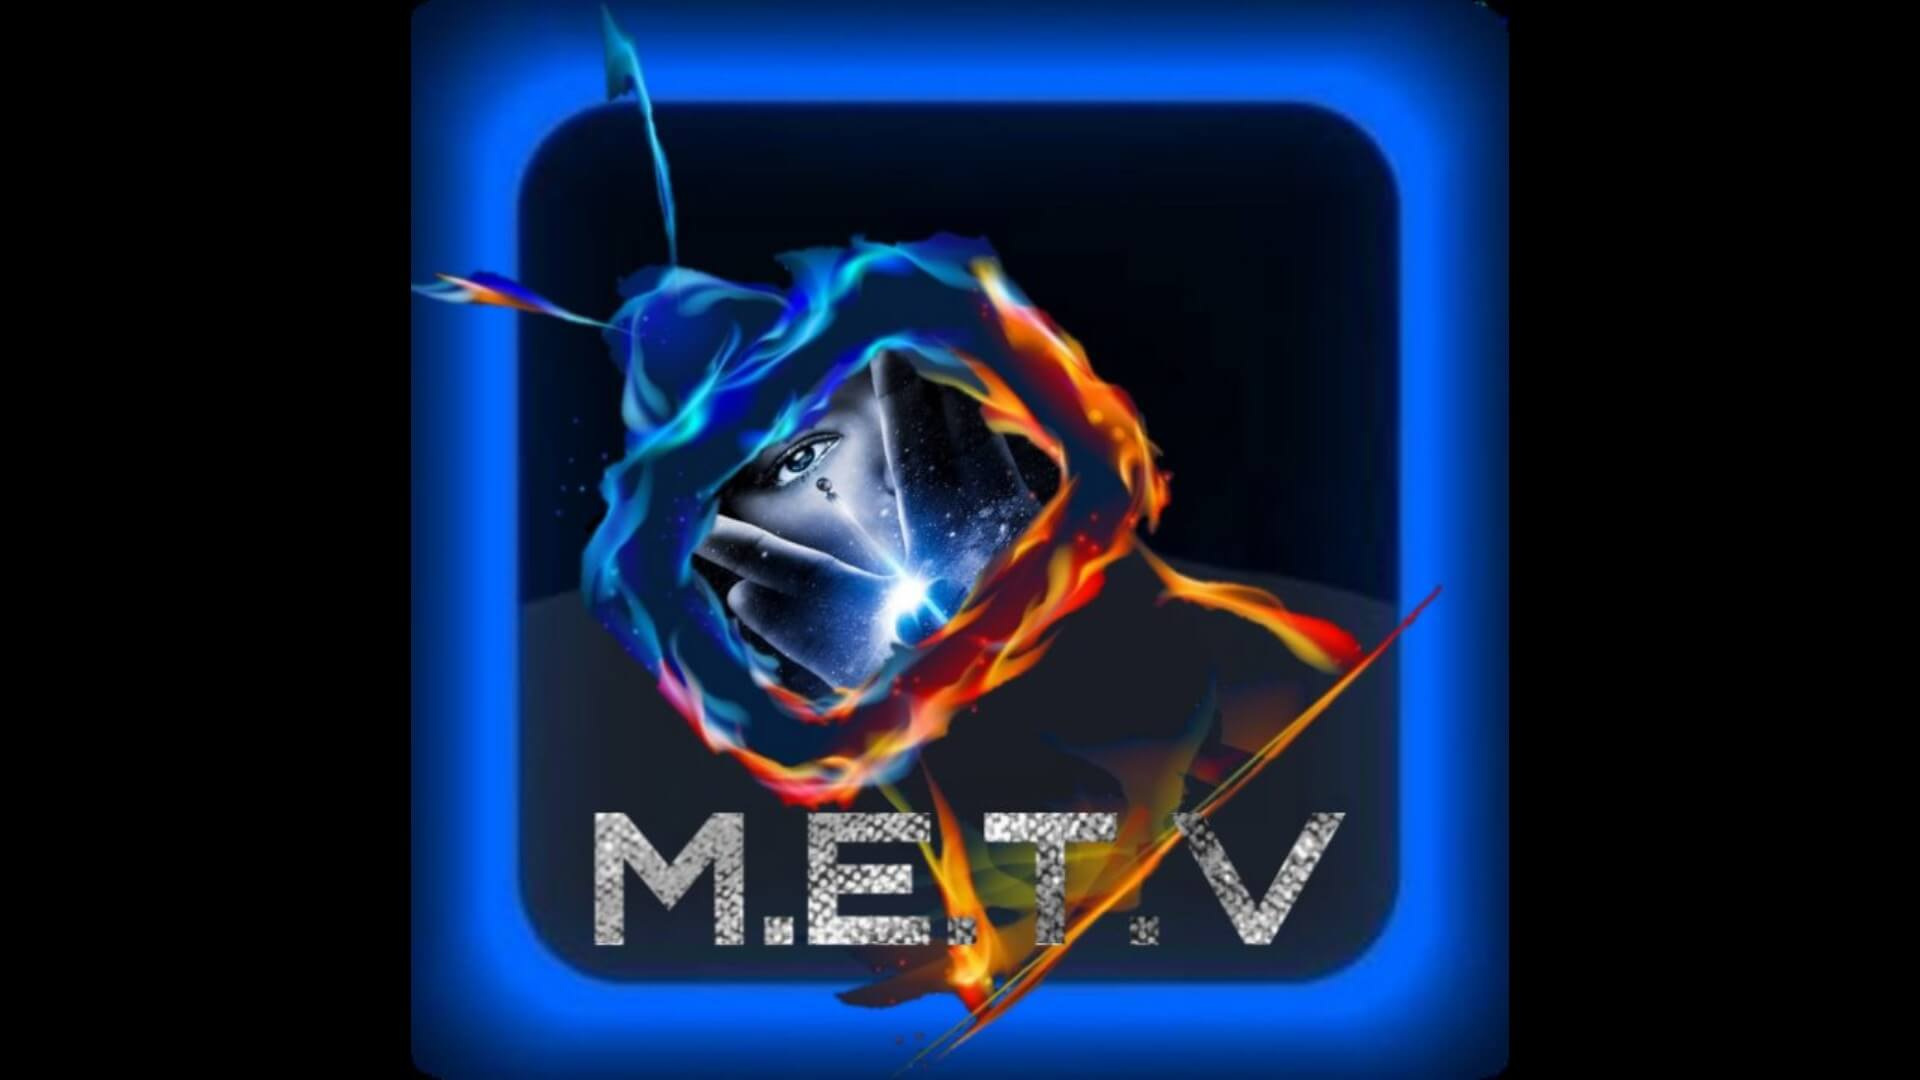 how-to-install-M.E.T.V-addon-on-kodi-19.0-matrix